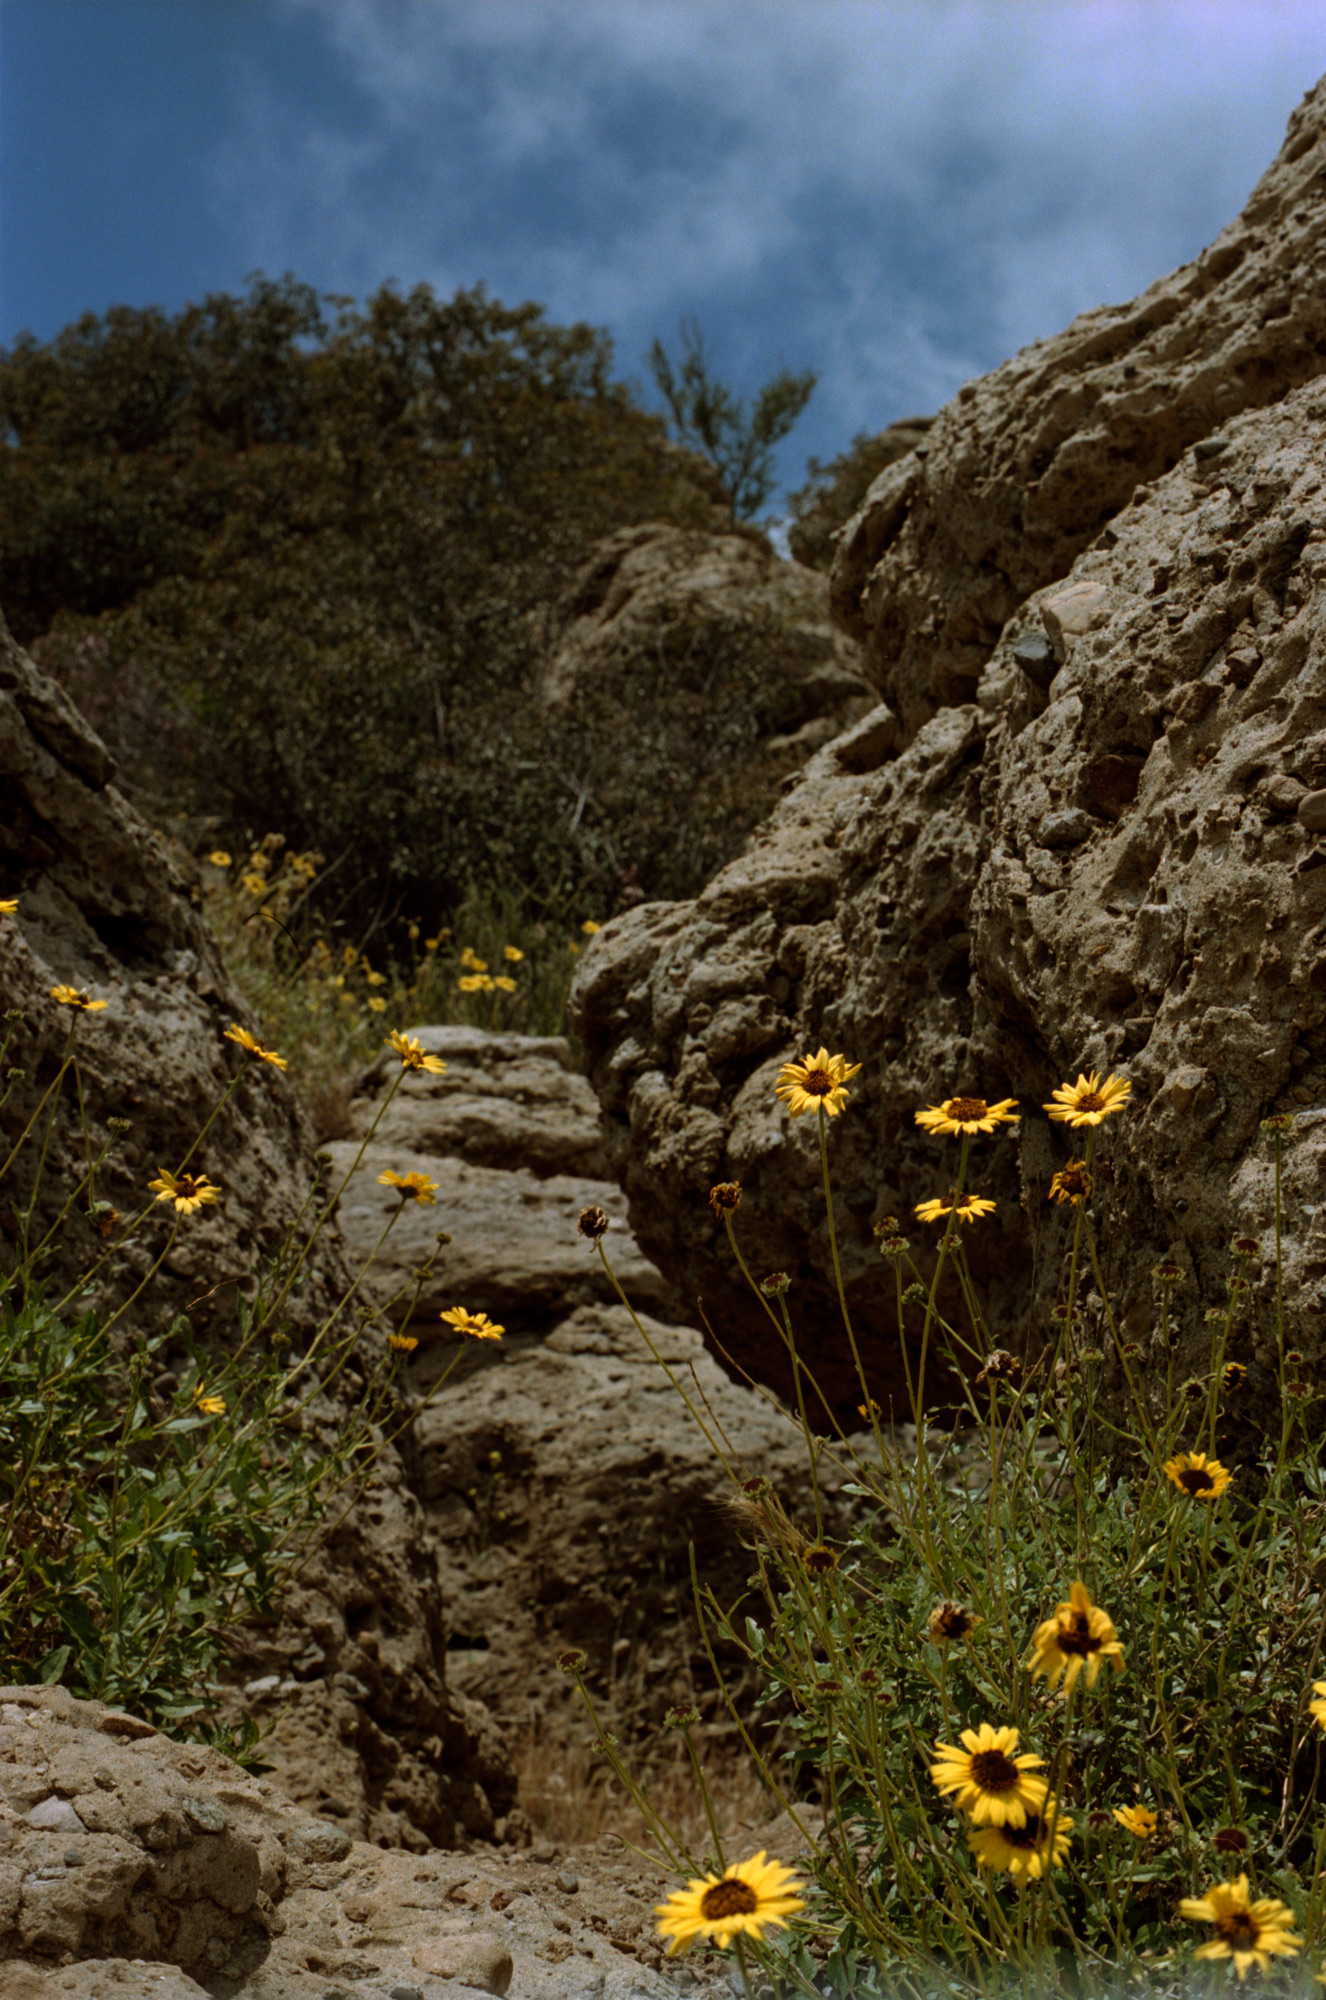 Florals and rock formations,   Point Dume, Malibu, Omg Your English, Photography By Ioannis Koussertari